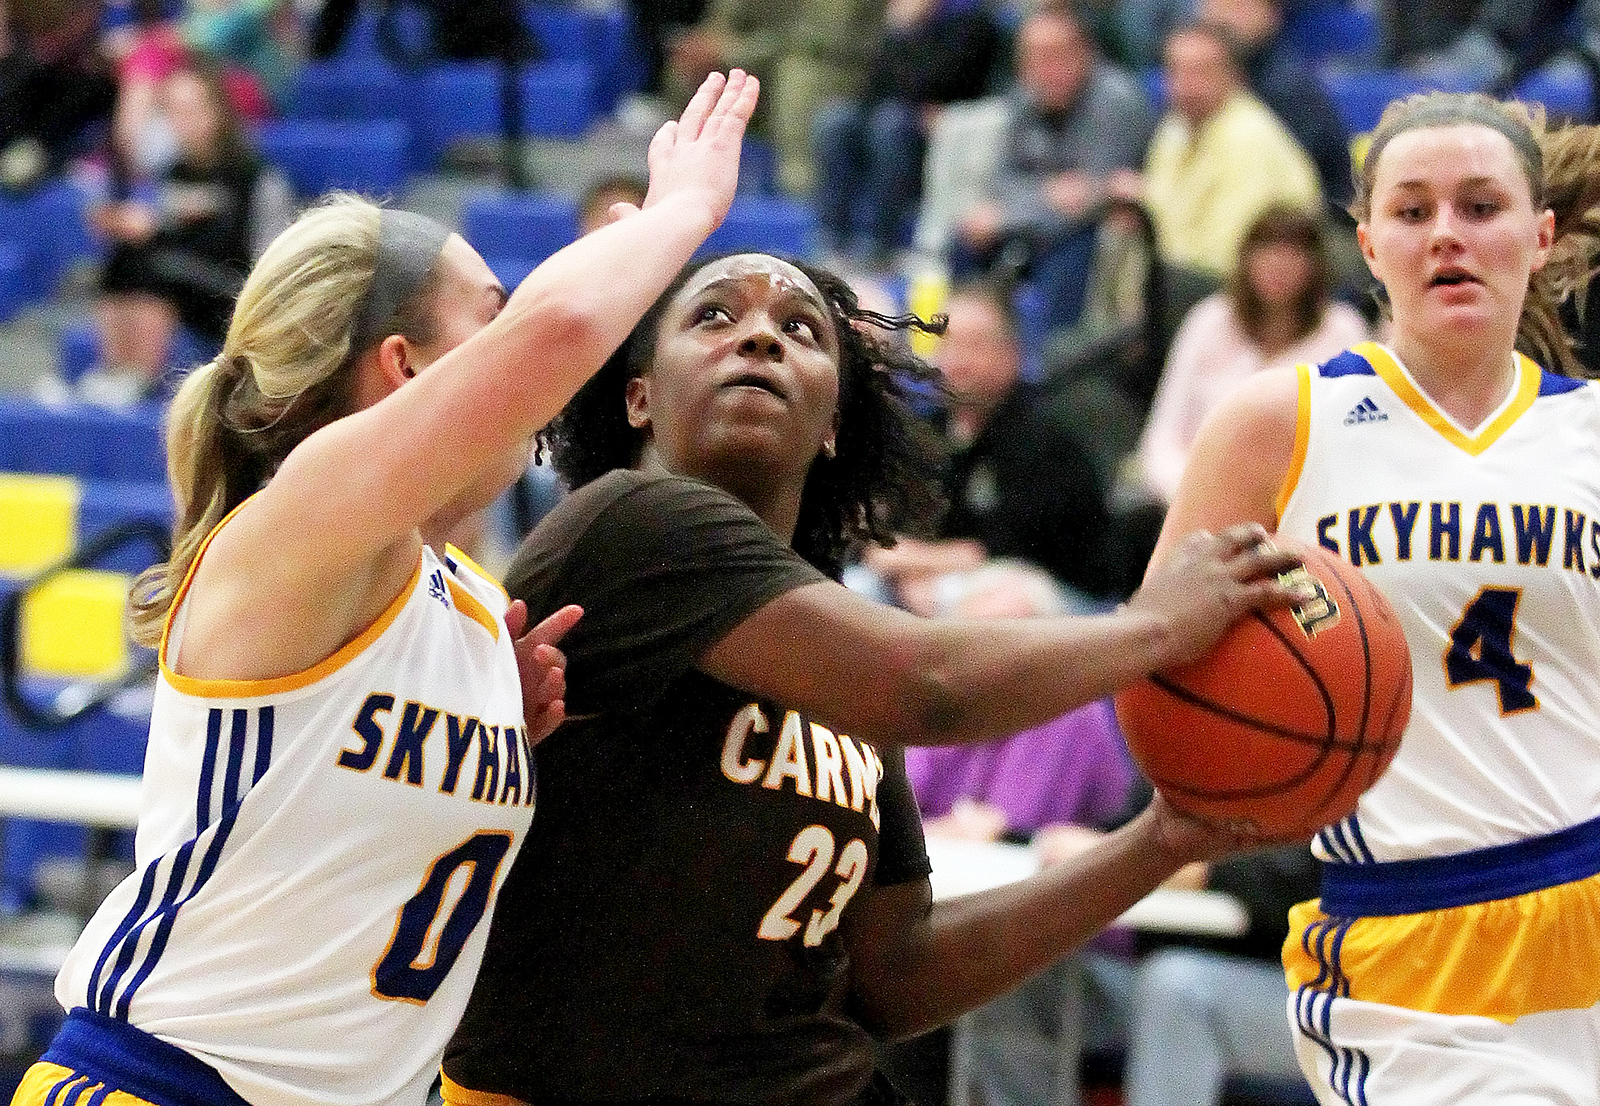 Candace H. Johnson-For Shaw Media Carmel's Ranya Jamison looks up for a shot against Johnsburg's Taylor Piggot in the third quarter during the Class 3A sectional semifinal game at Johnsburg High School.